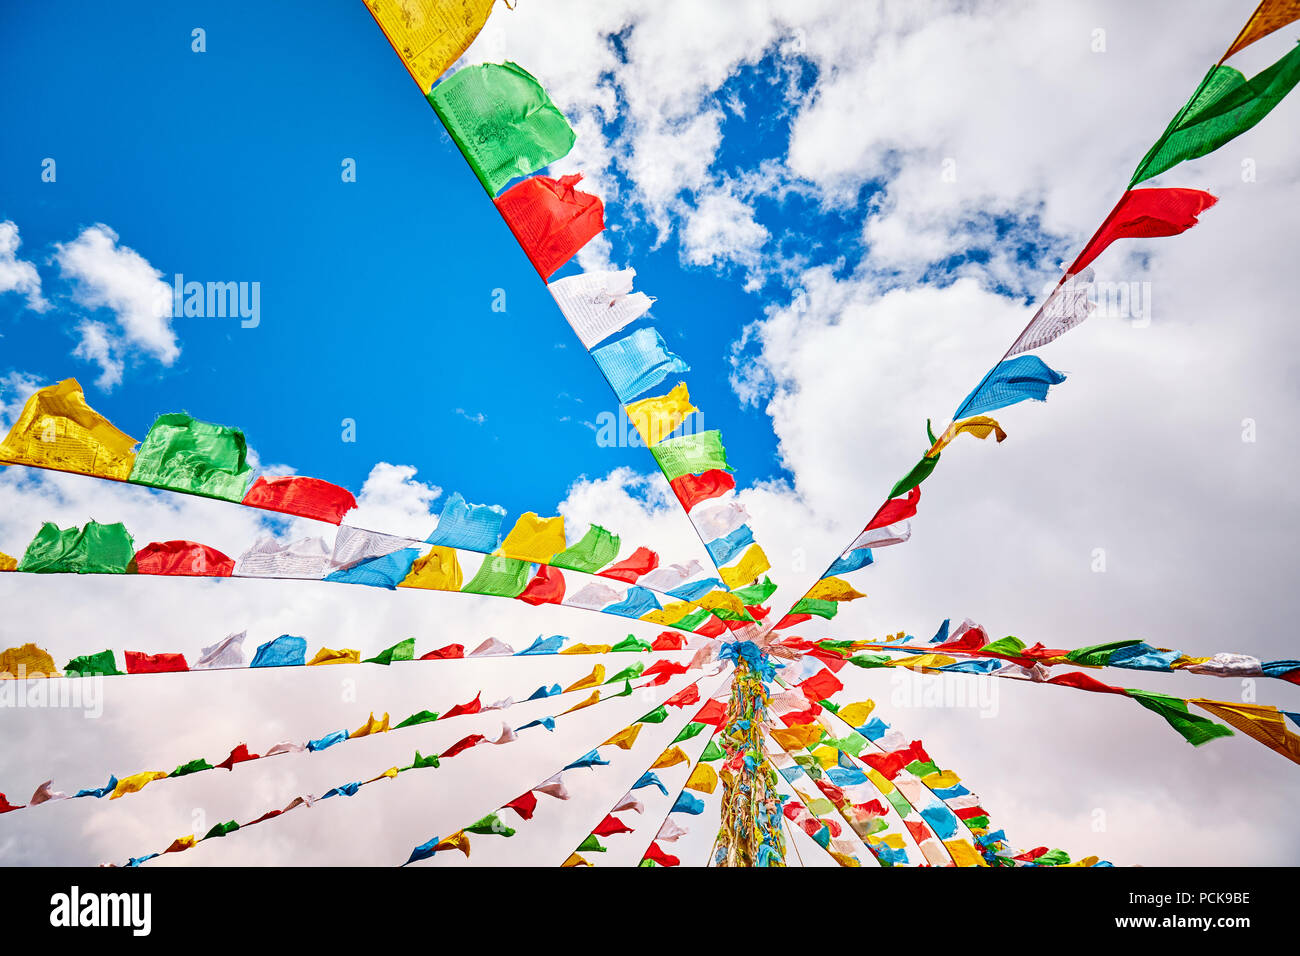 Looking up at Buddhist prayer flags. Tibetans believe the prayers and mantras will be blown by the wind to spread the good will and compassion. - Stock Image